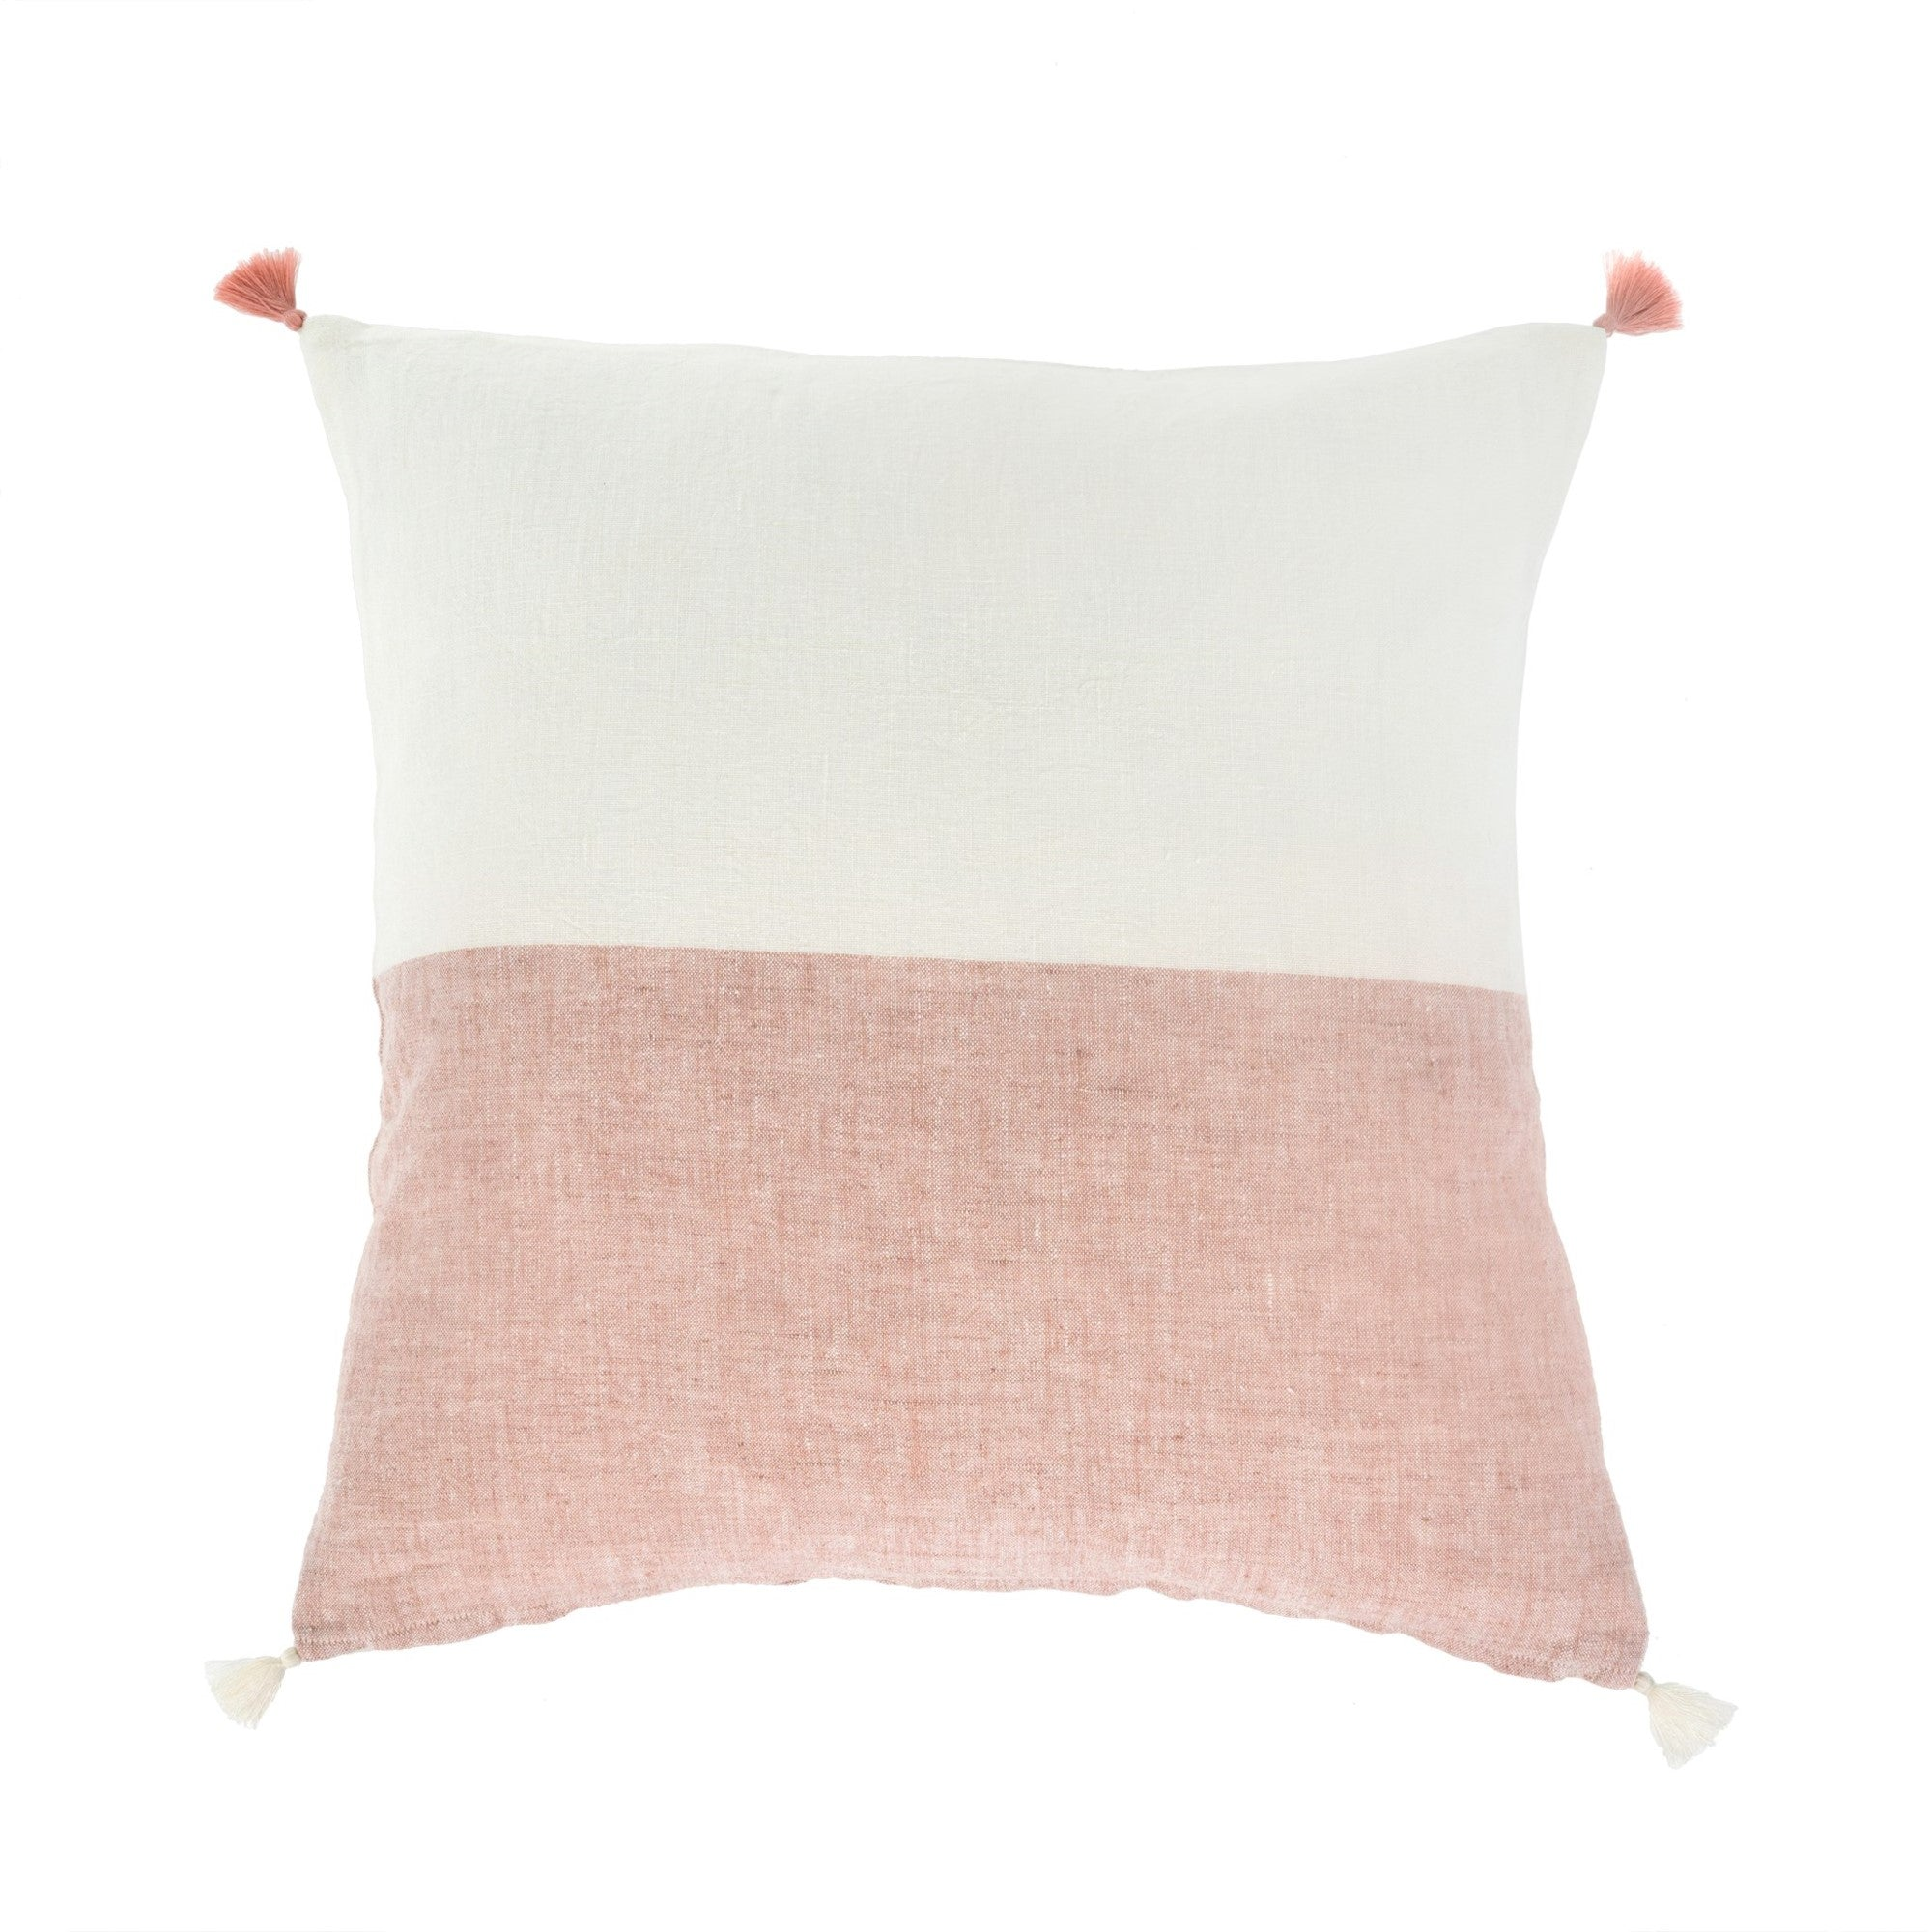 Layla Linen Pillow - Coral | Putti Fine Furnishings